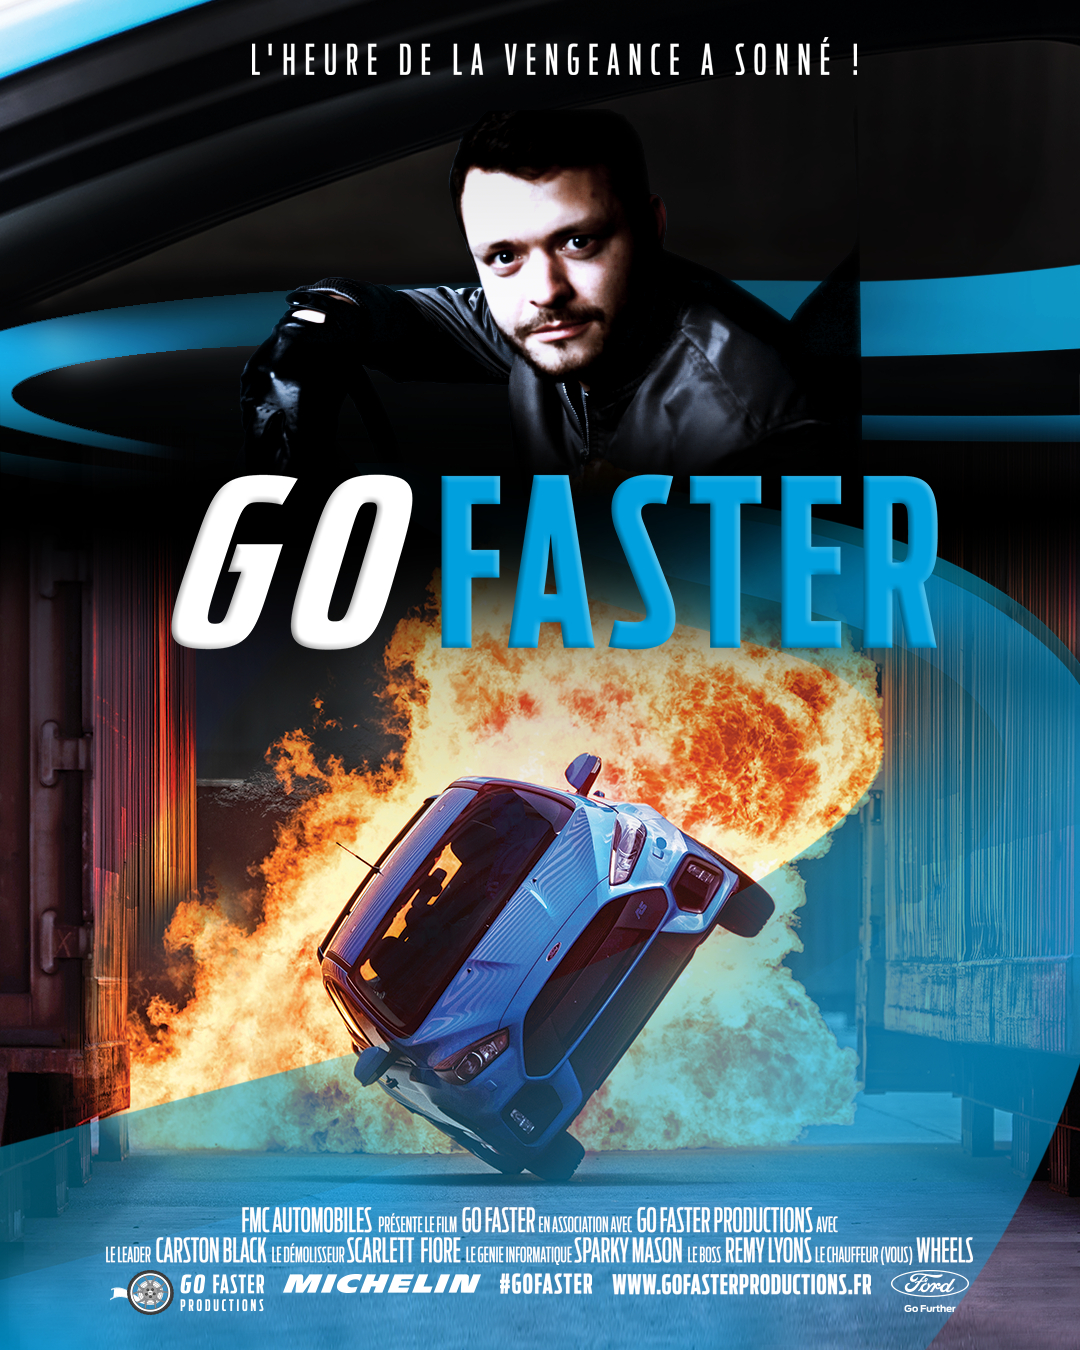 gofaster29-opération-go-faster-ford-poster-Arnaud Demasier-RSPhotographie